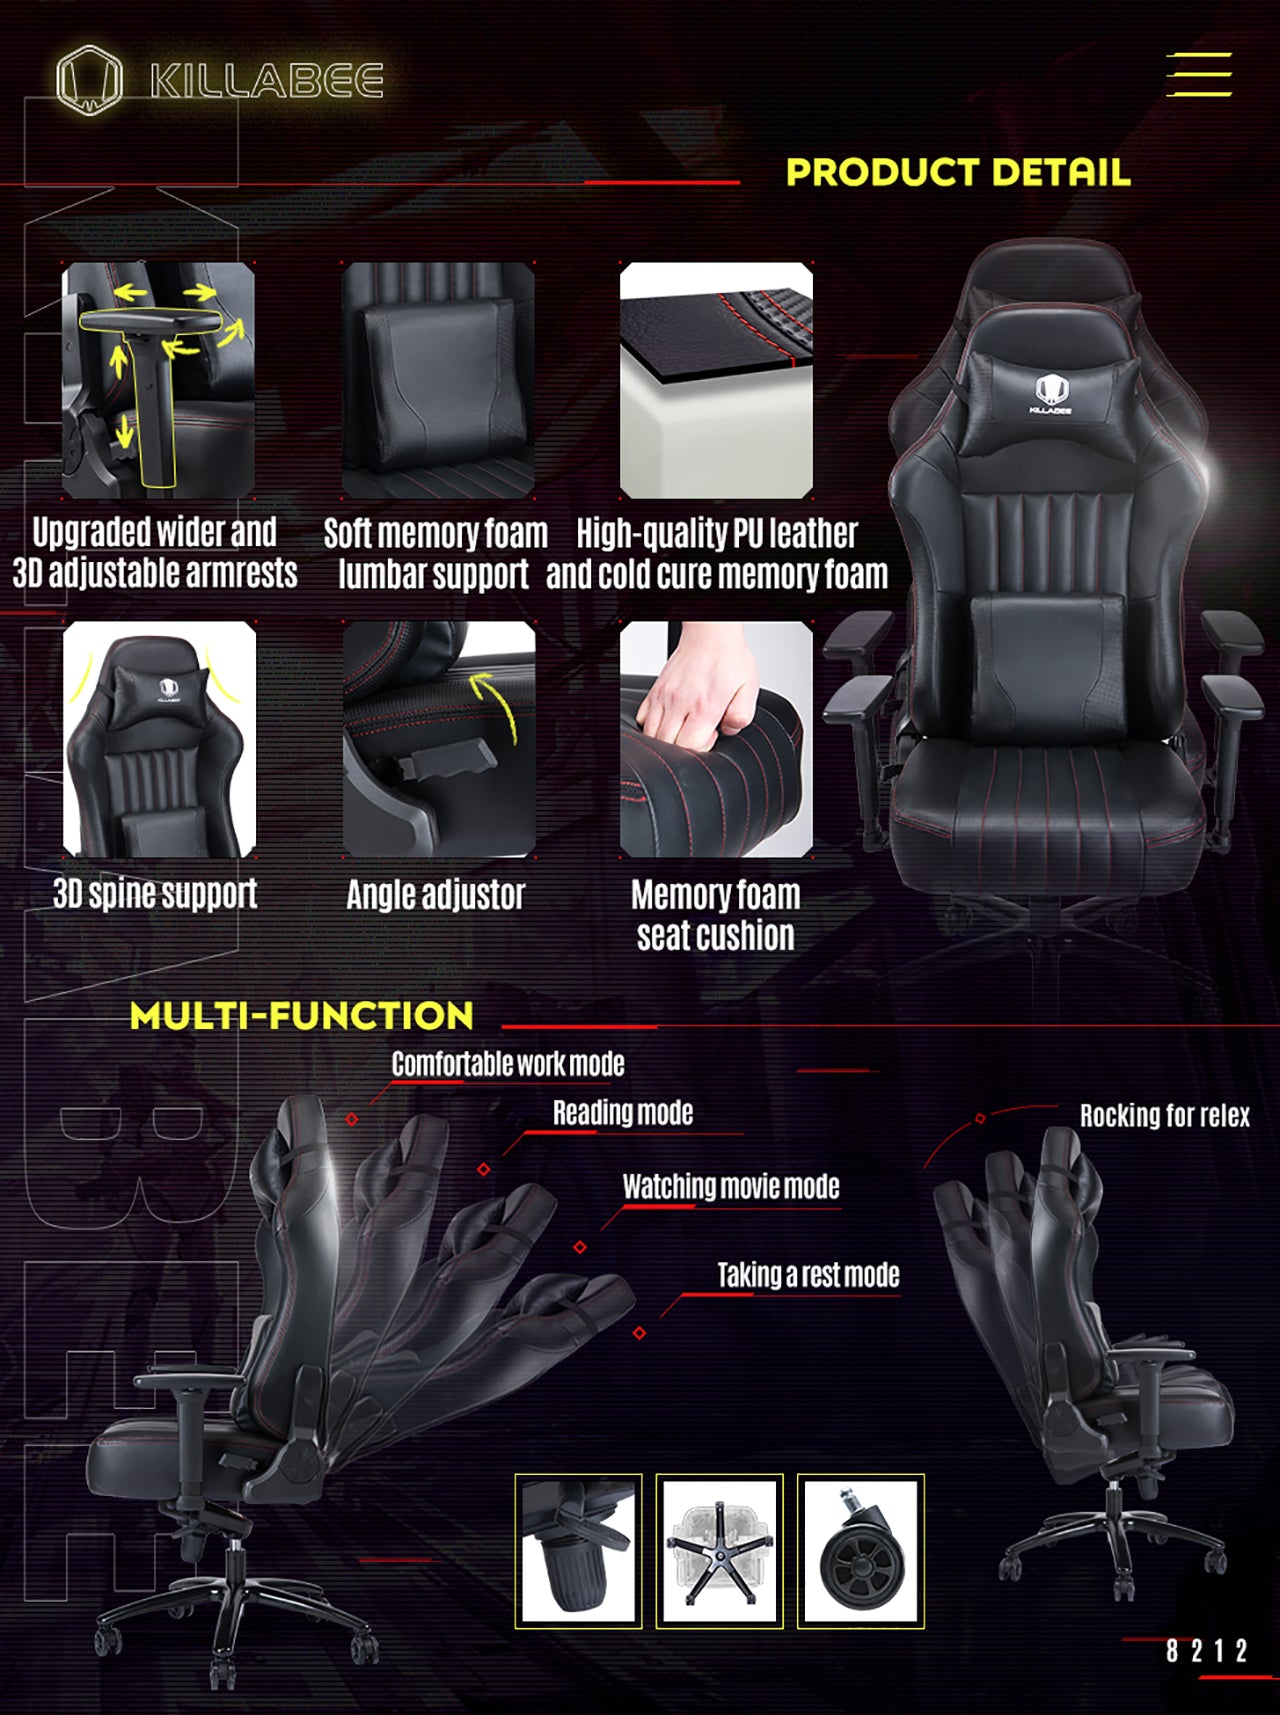 KILLABEE BIG AND TALL GAMING CHAIR 8212 BLACK FEATURES